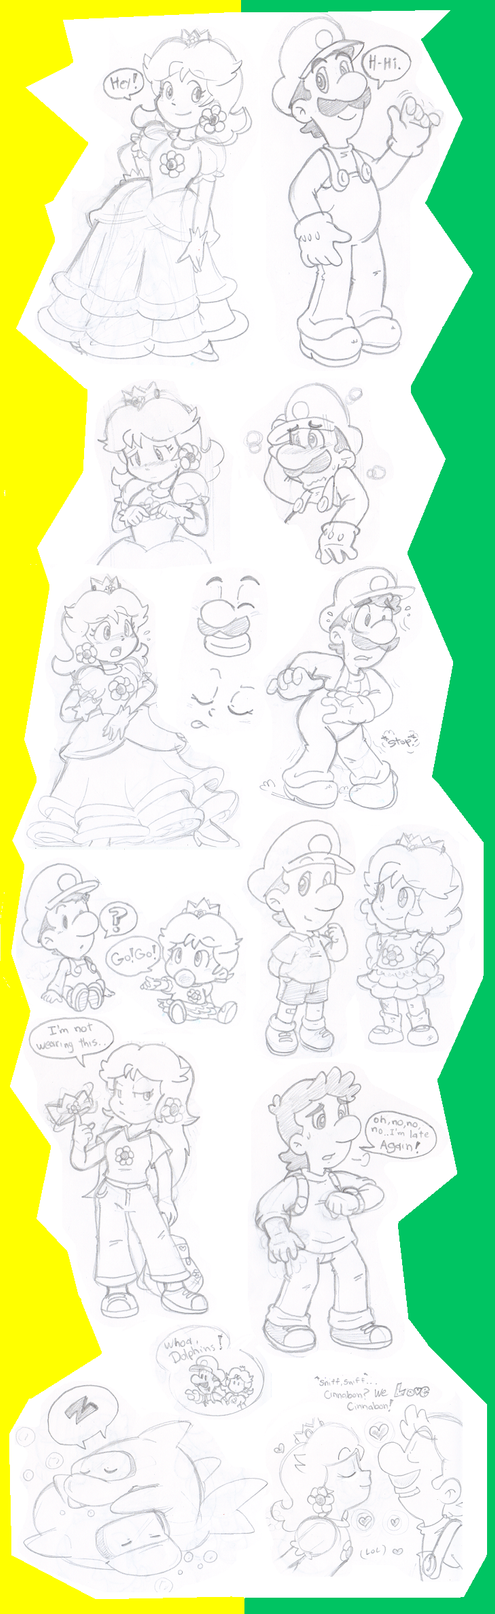 Doodles: Luigi and Daisy by Nintendrawer